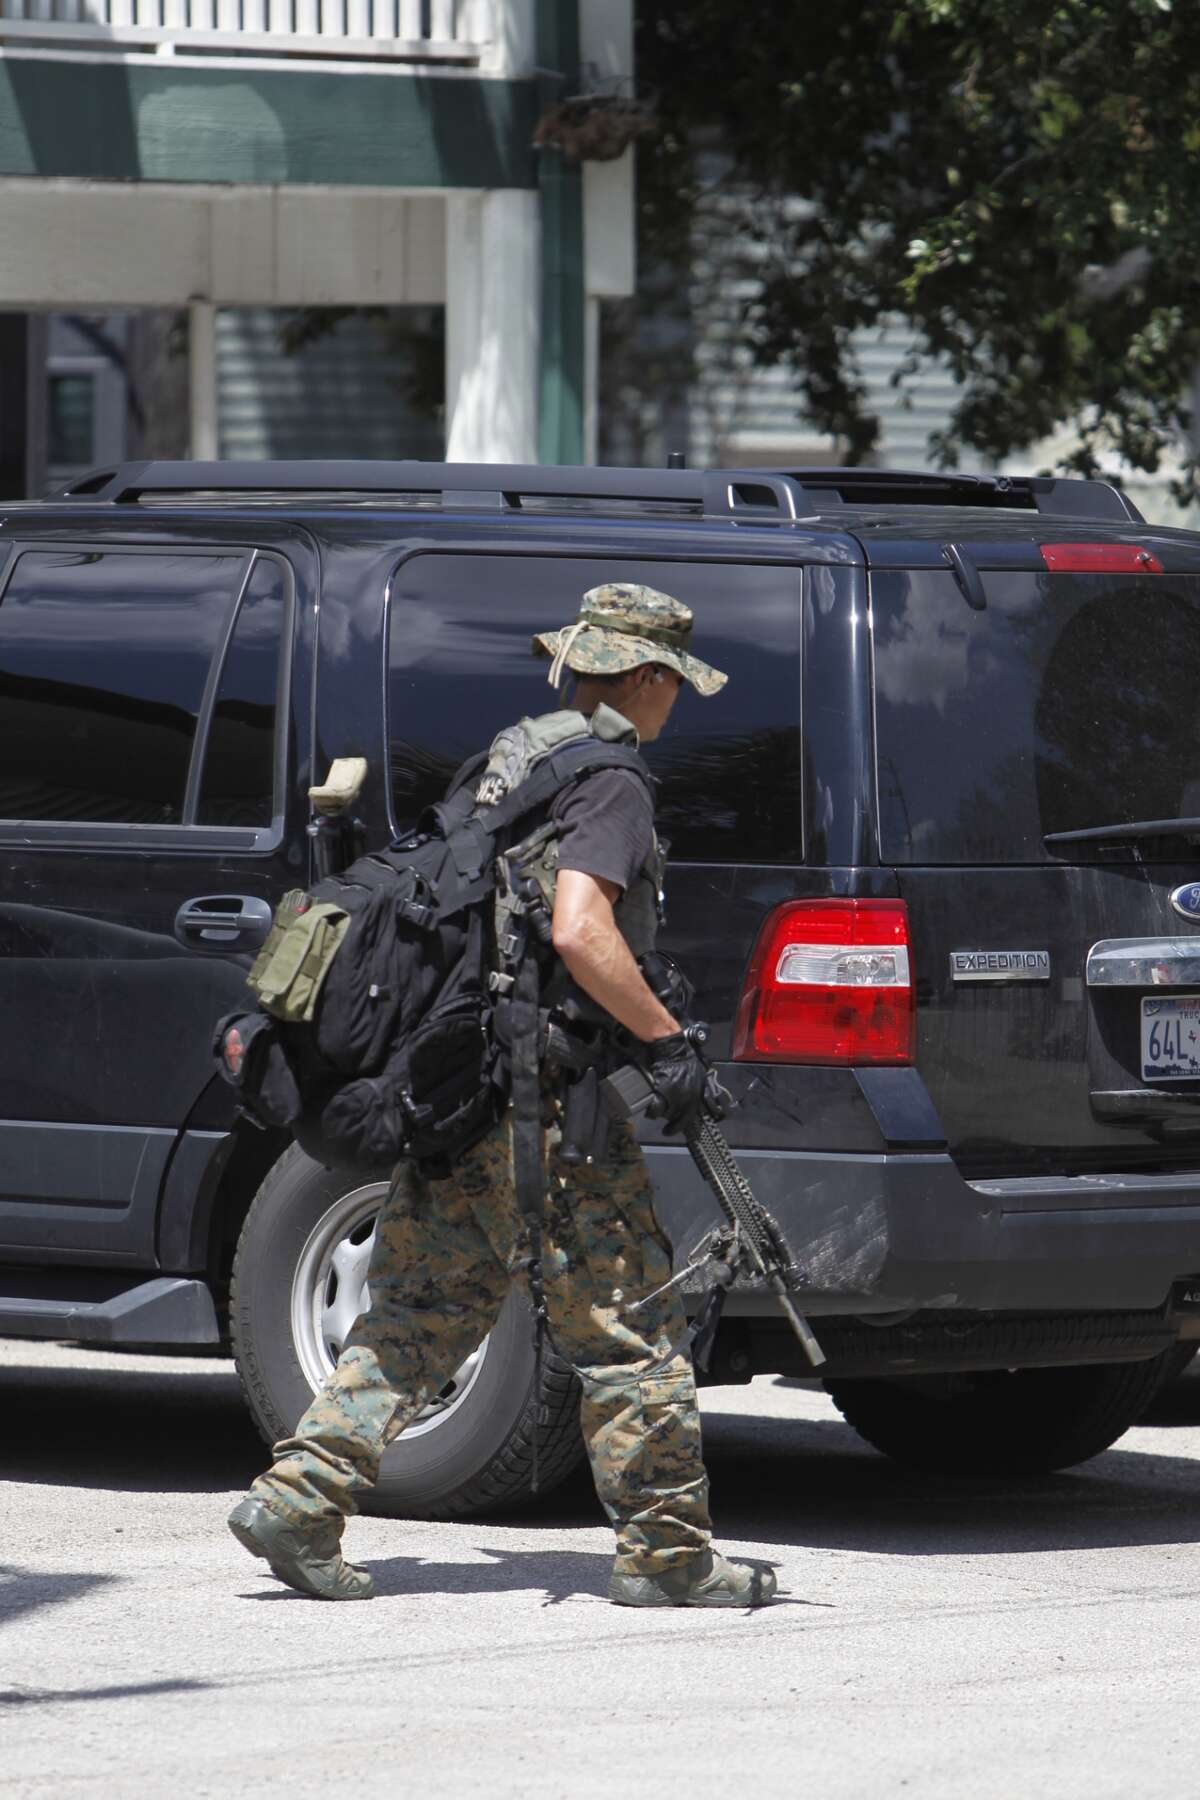 A woman has barricaded herself inside a residence at Emerson Court Apartments in the Montrose area, leading to a standoff with Houston SWAT team members.